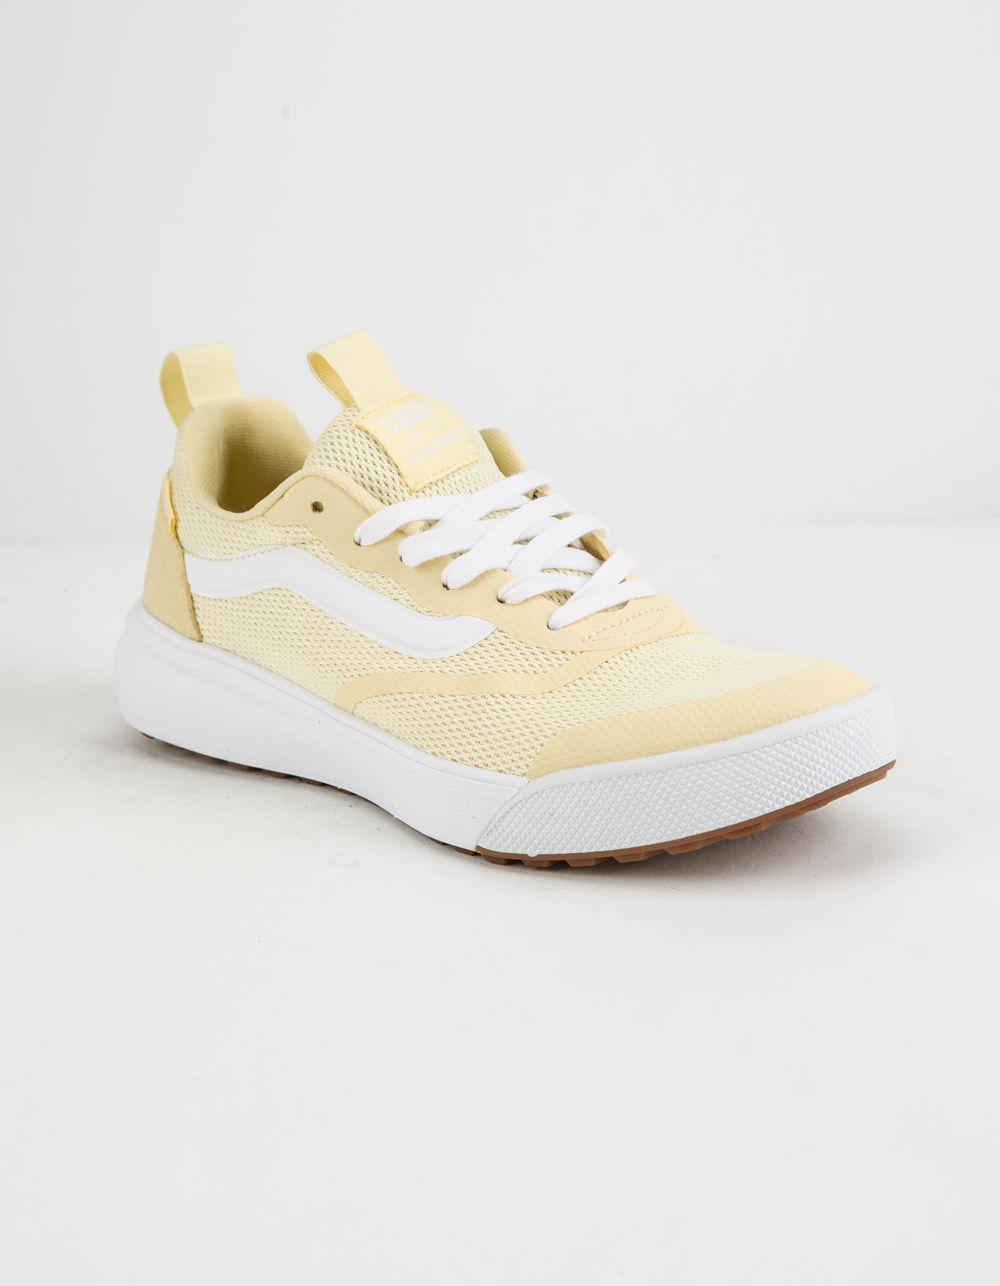 272463e172f981 ... Lyst Vans Ultrarange Rapidweld Pineapple Slice Womens Shoes in Yellow